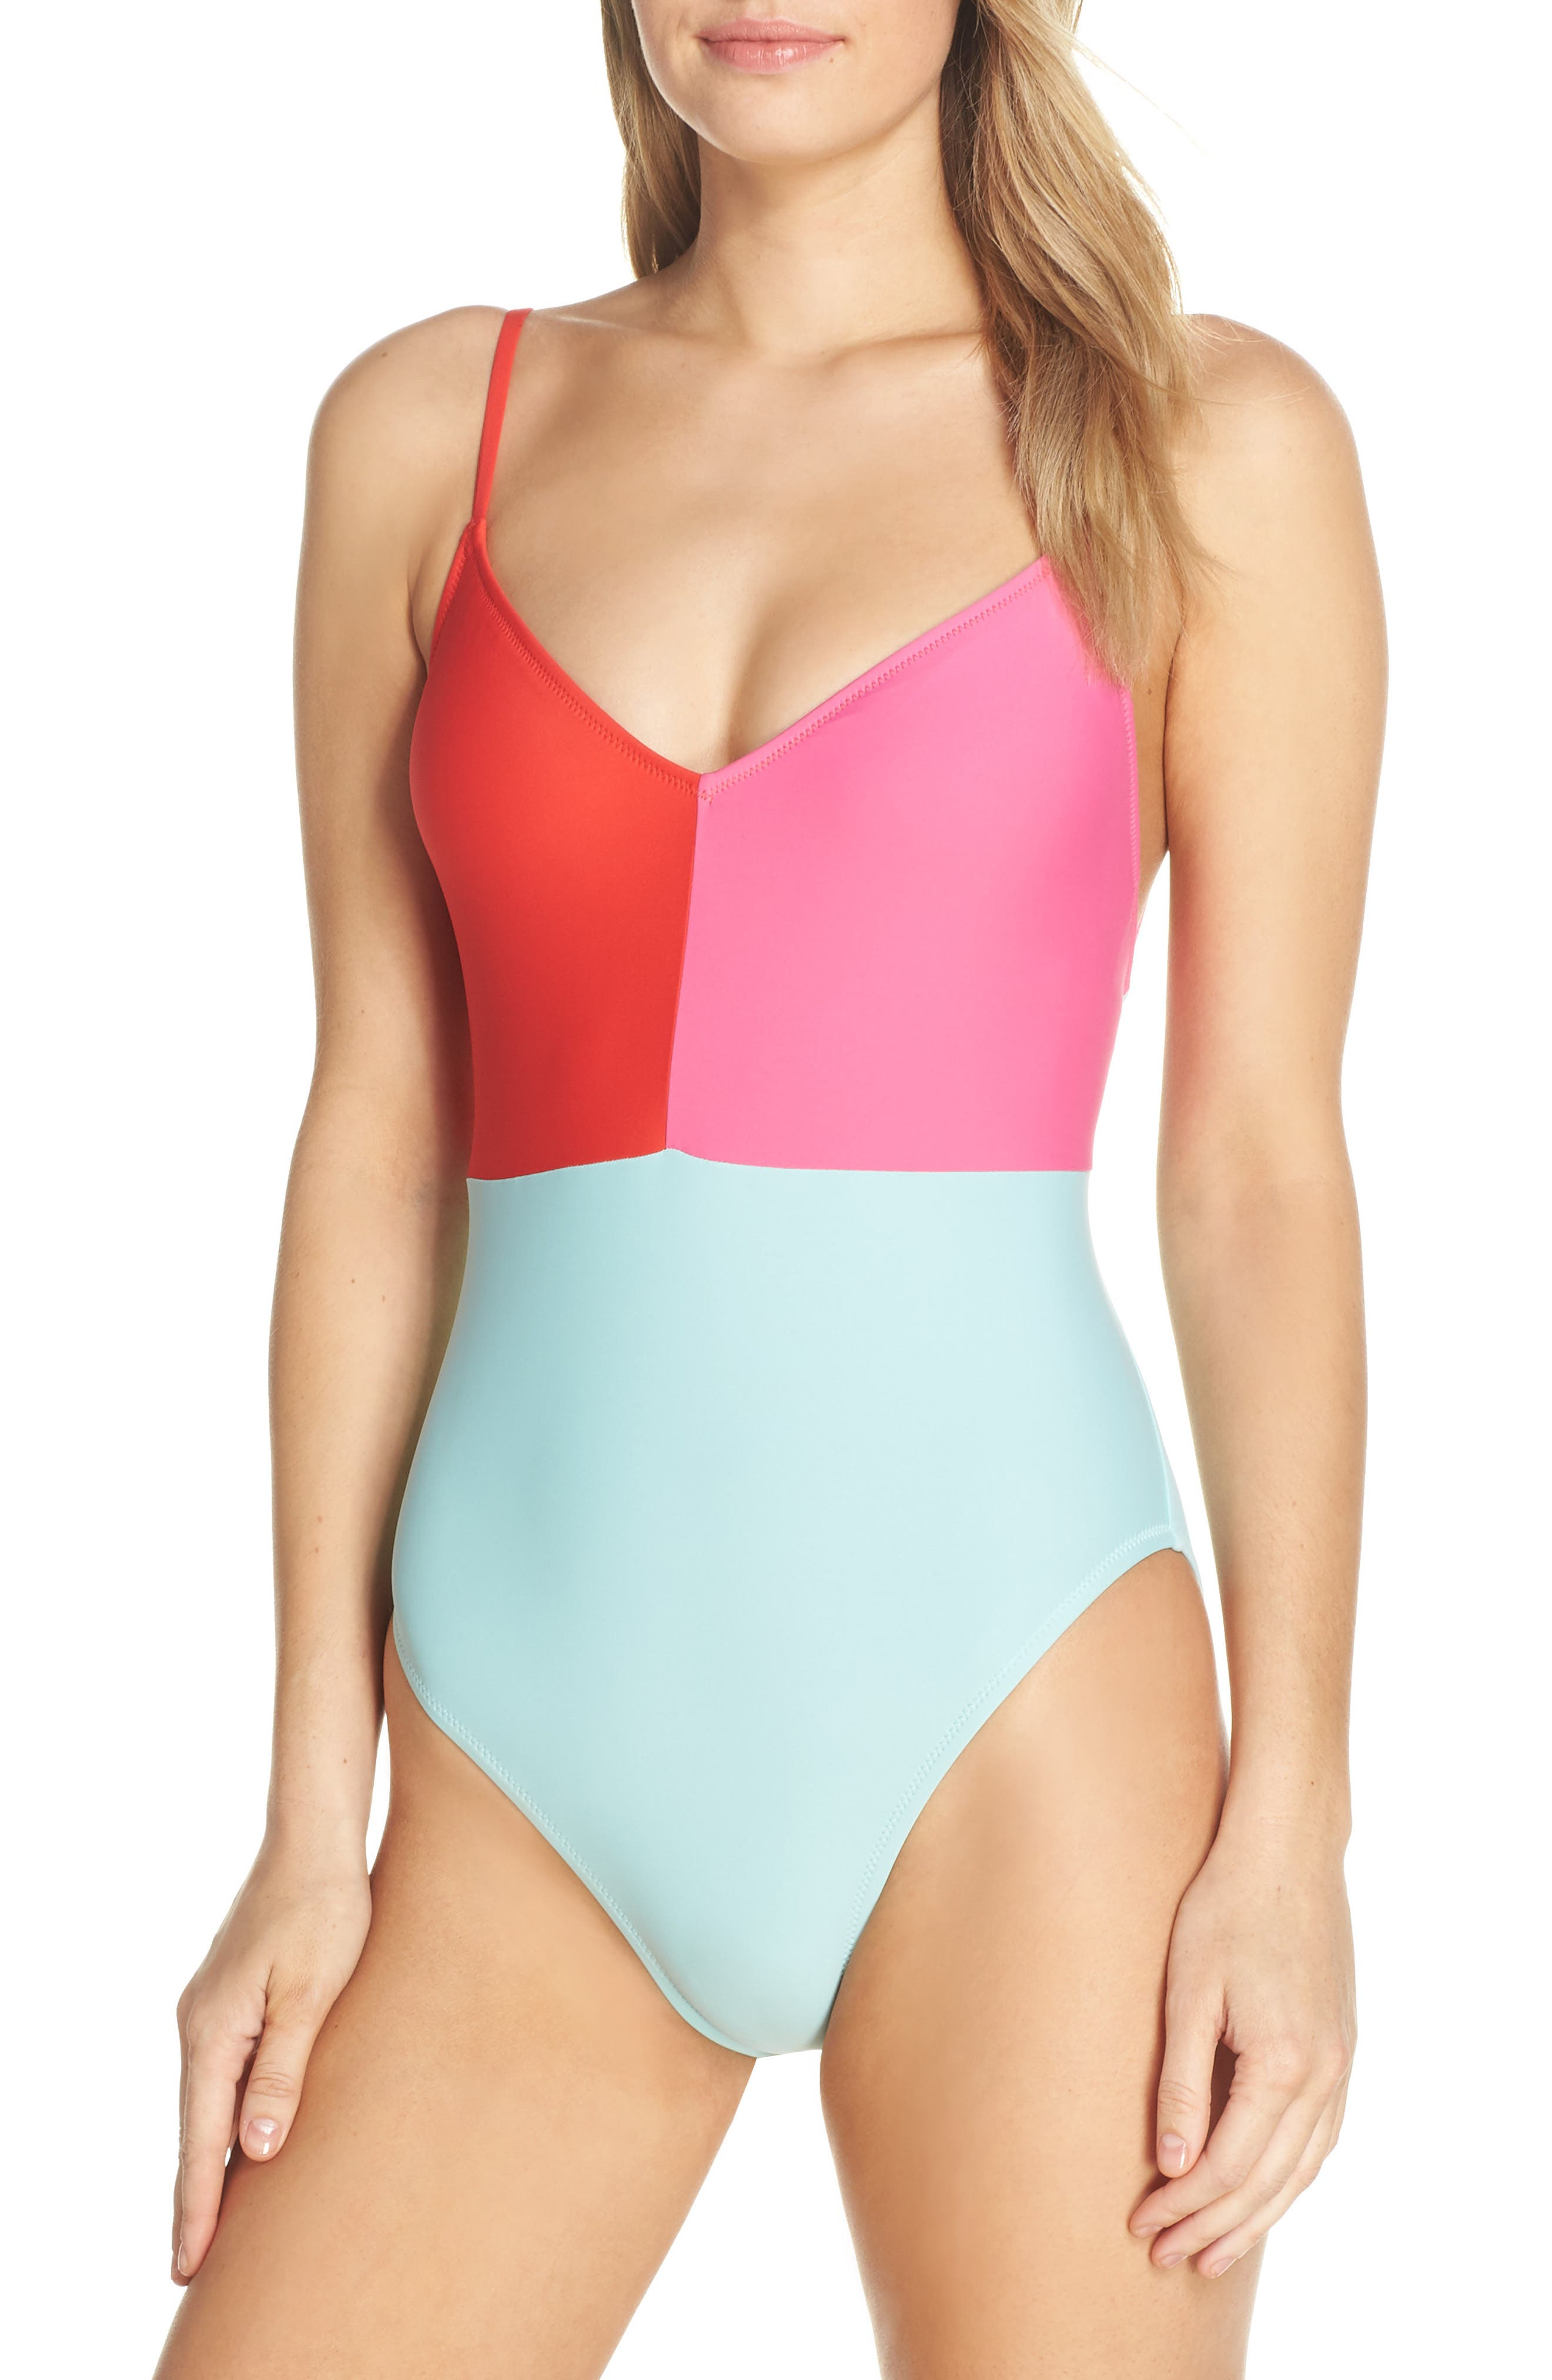 60s Swimsuits, 70s Bathing Suits | Retro Swimwear Womens J.crew Colorblock Strappy One-Piece Swimsuit $110.00 AT vintagedancer.com